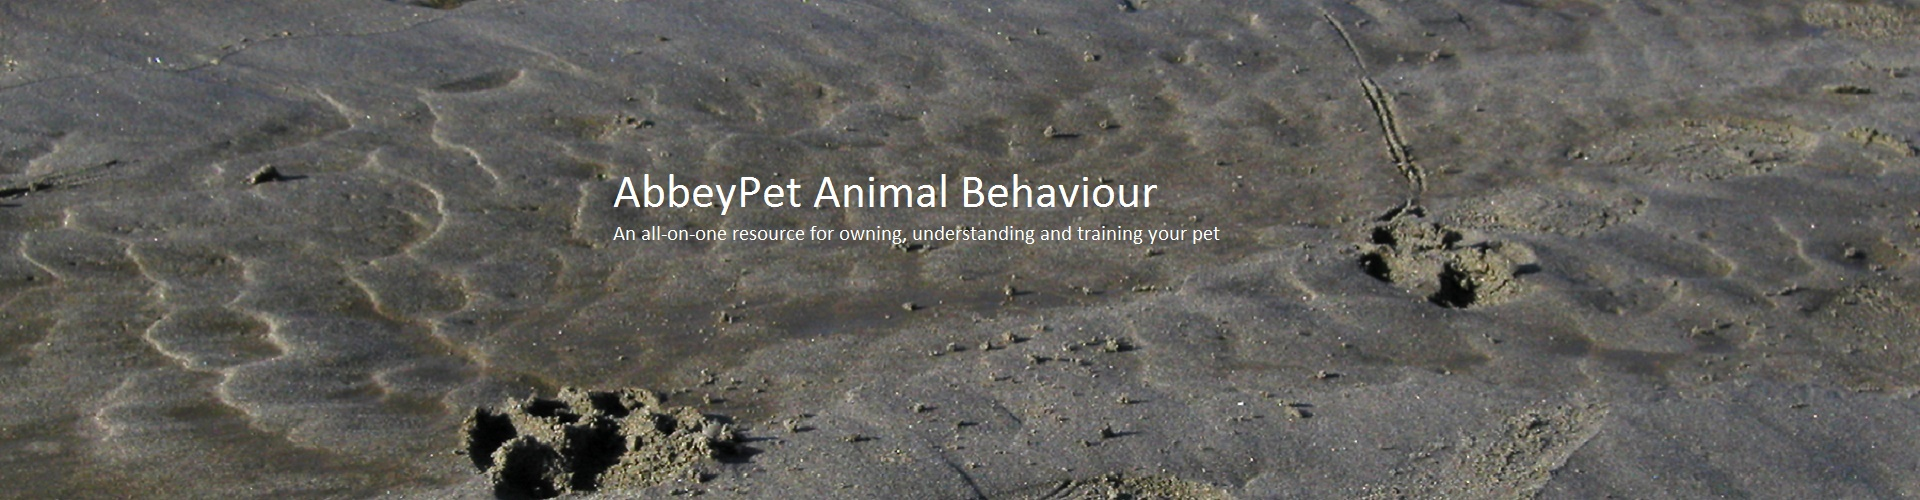 AbbeyPet Animal Behaviour Clinic